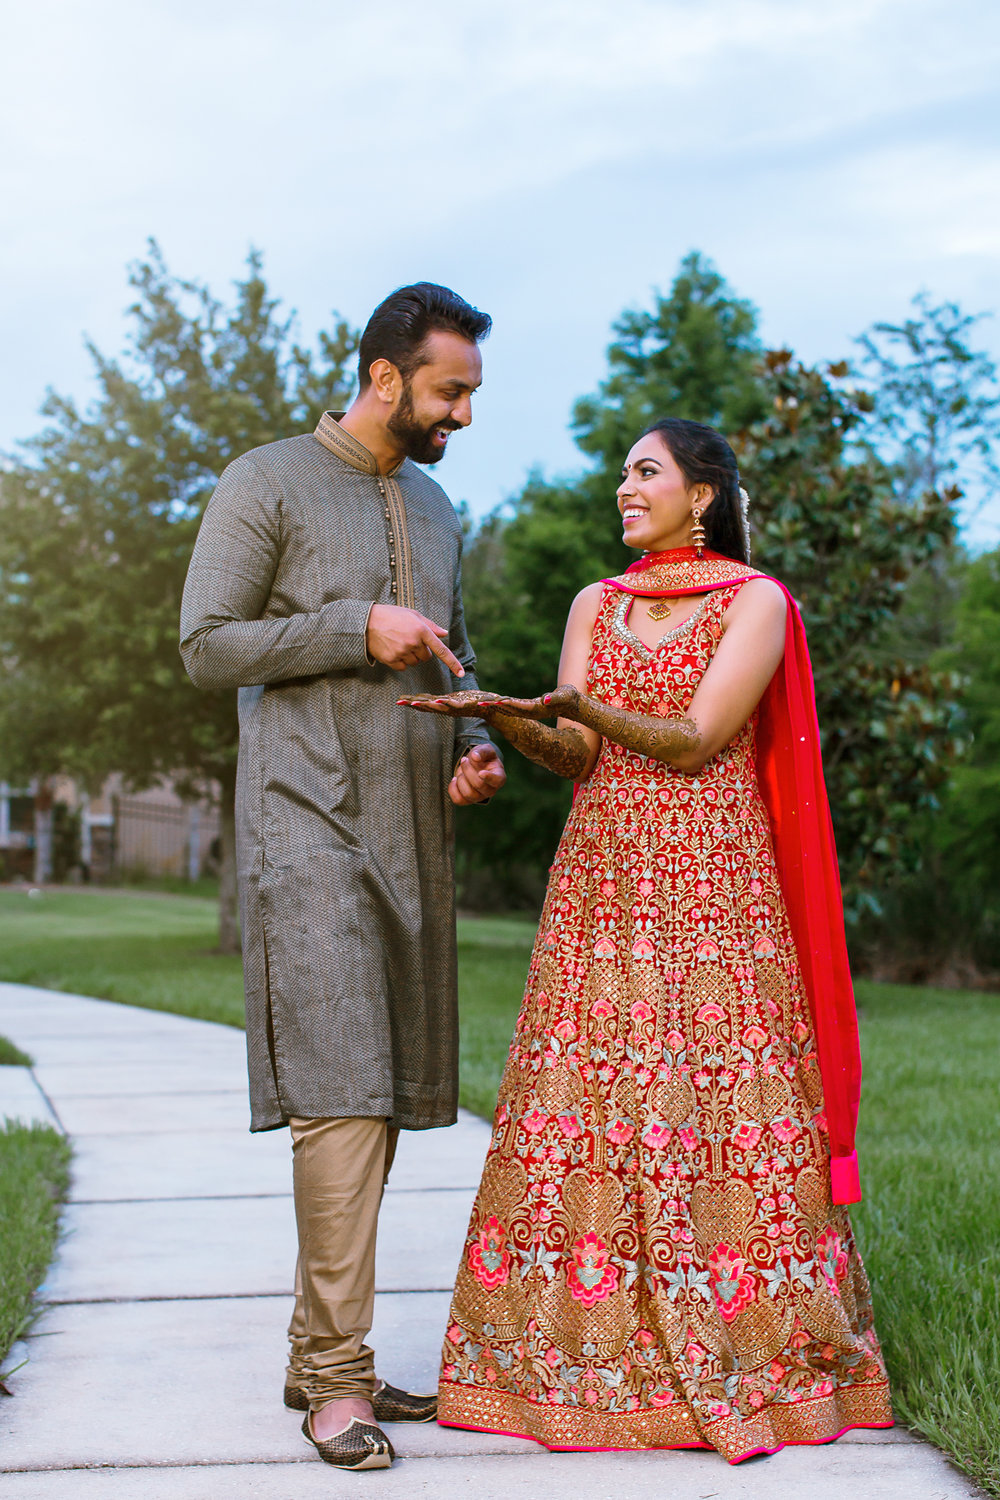 Orlando Indian wedding photography